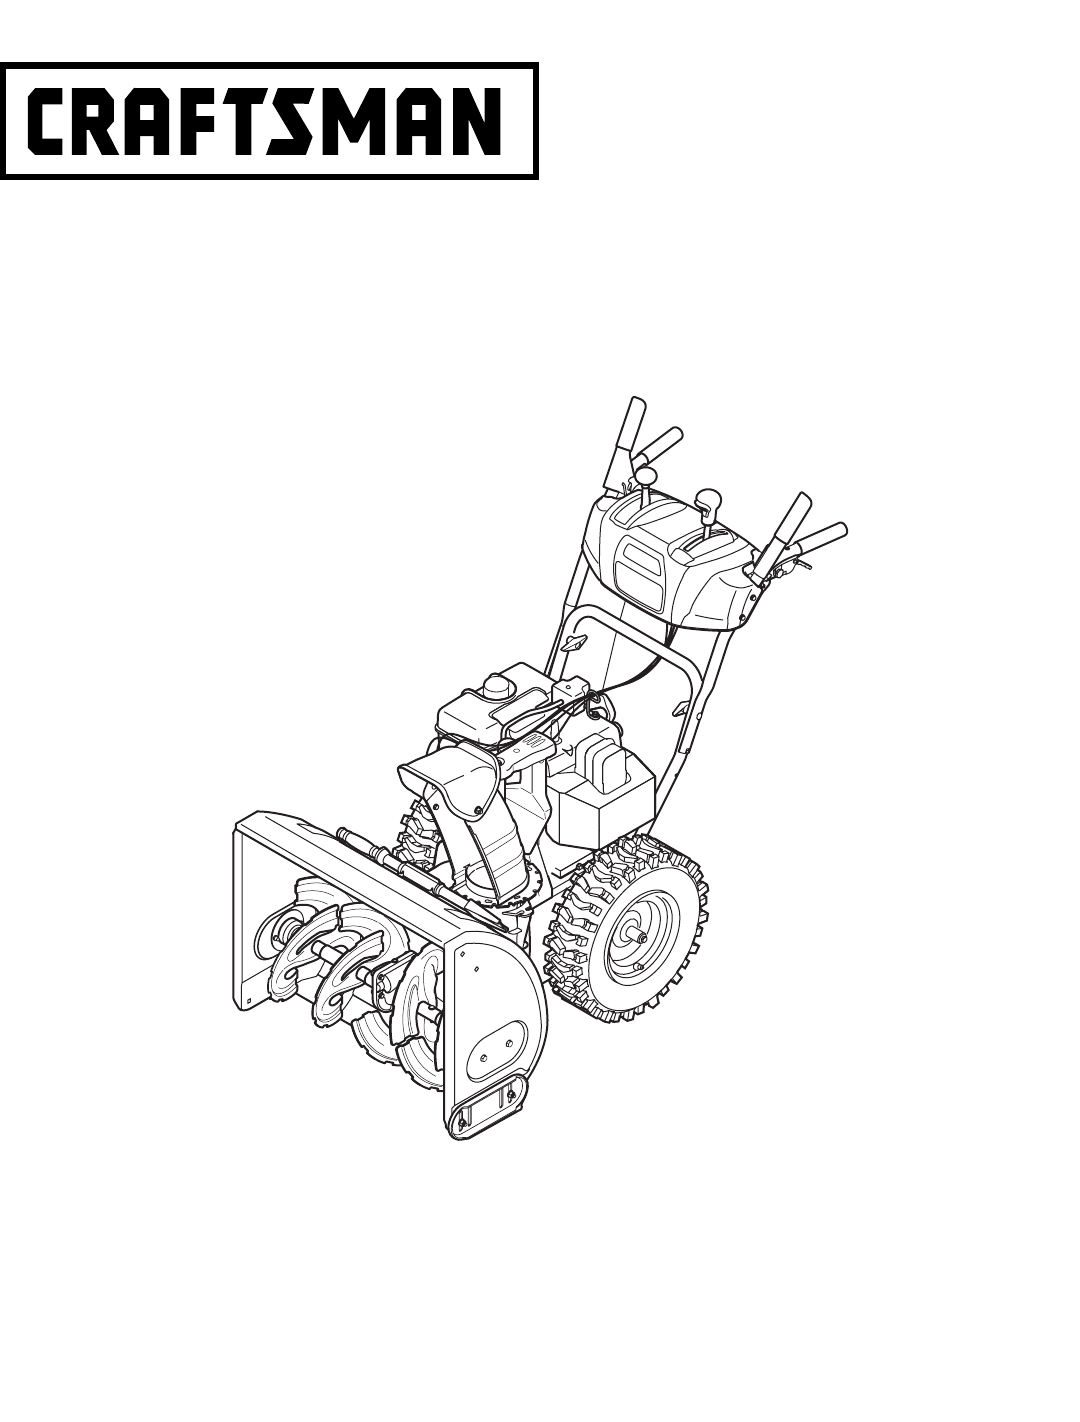 Craftsman 42 Snow Thrower Manual